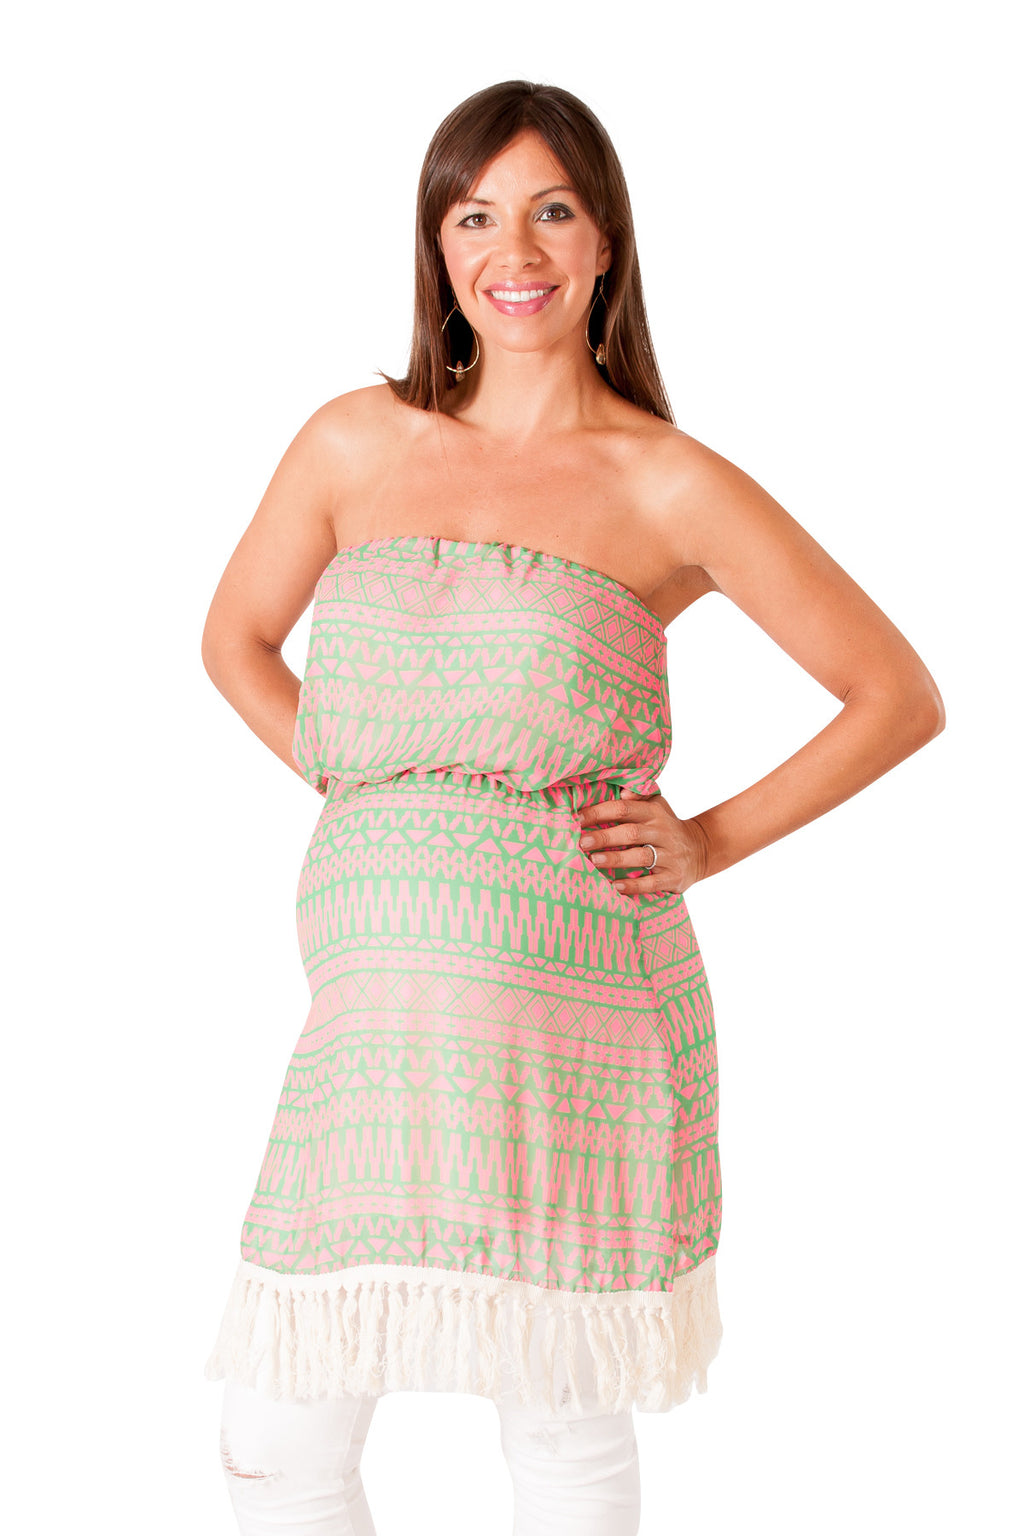 Strapless Maternity Tunic - Mommylicious